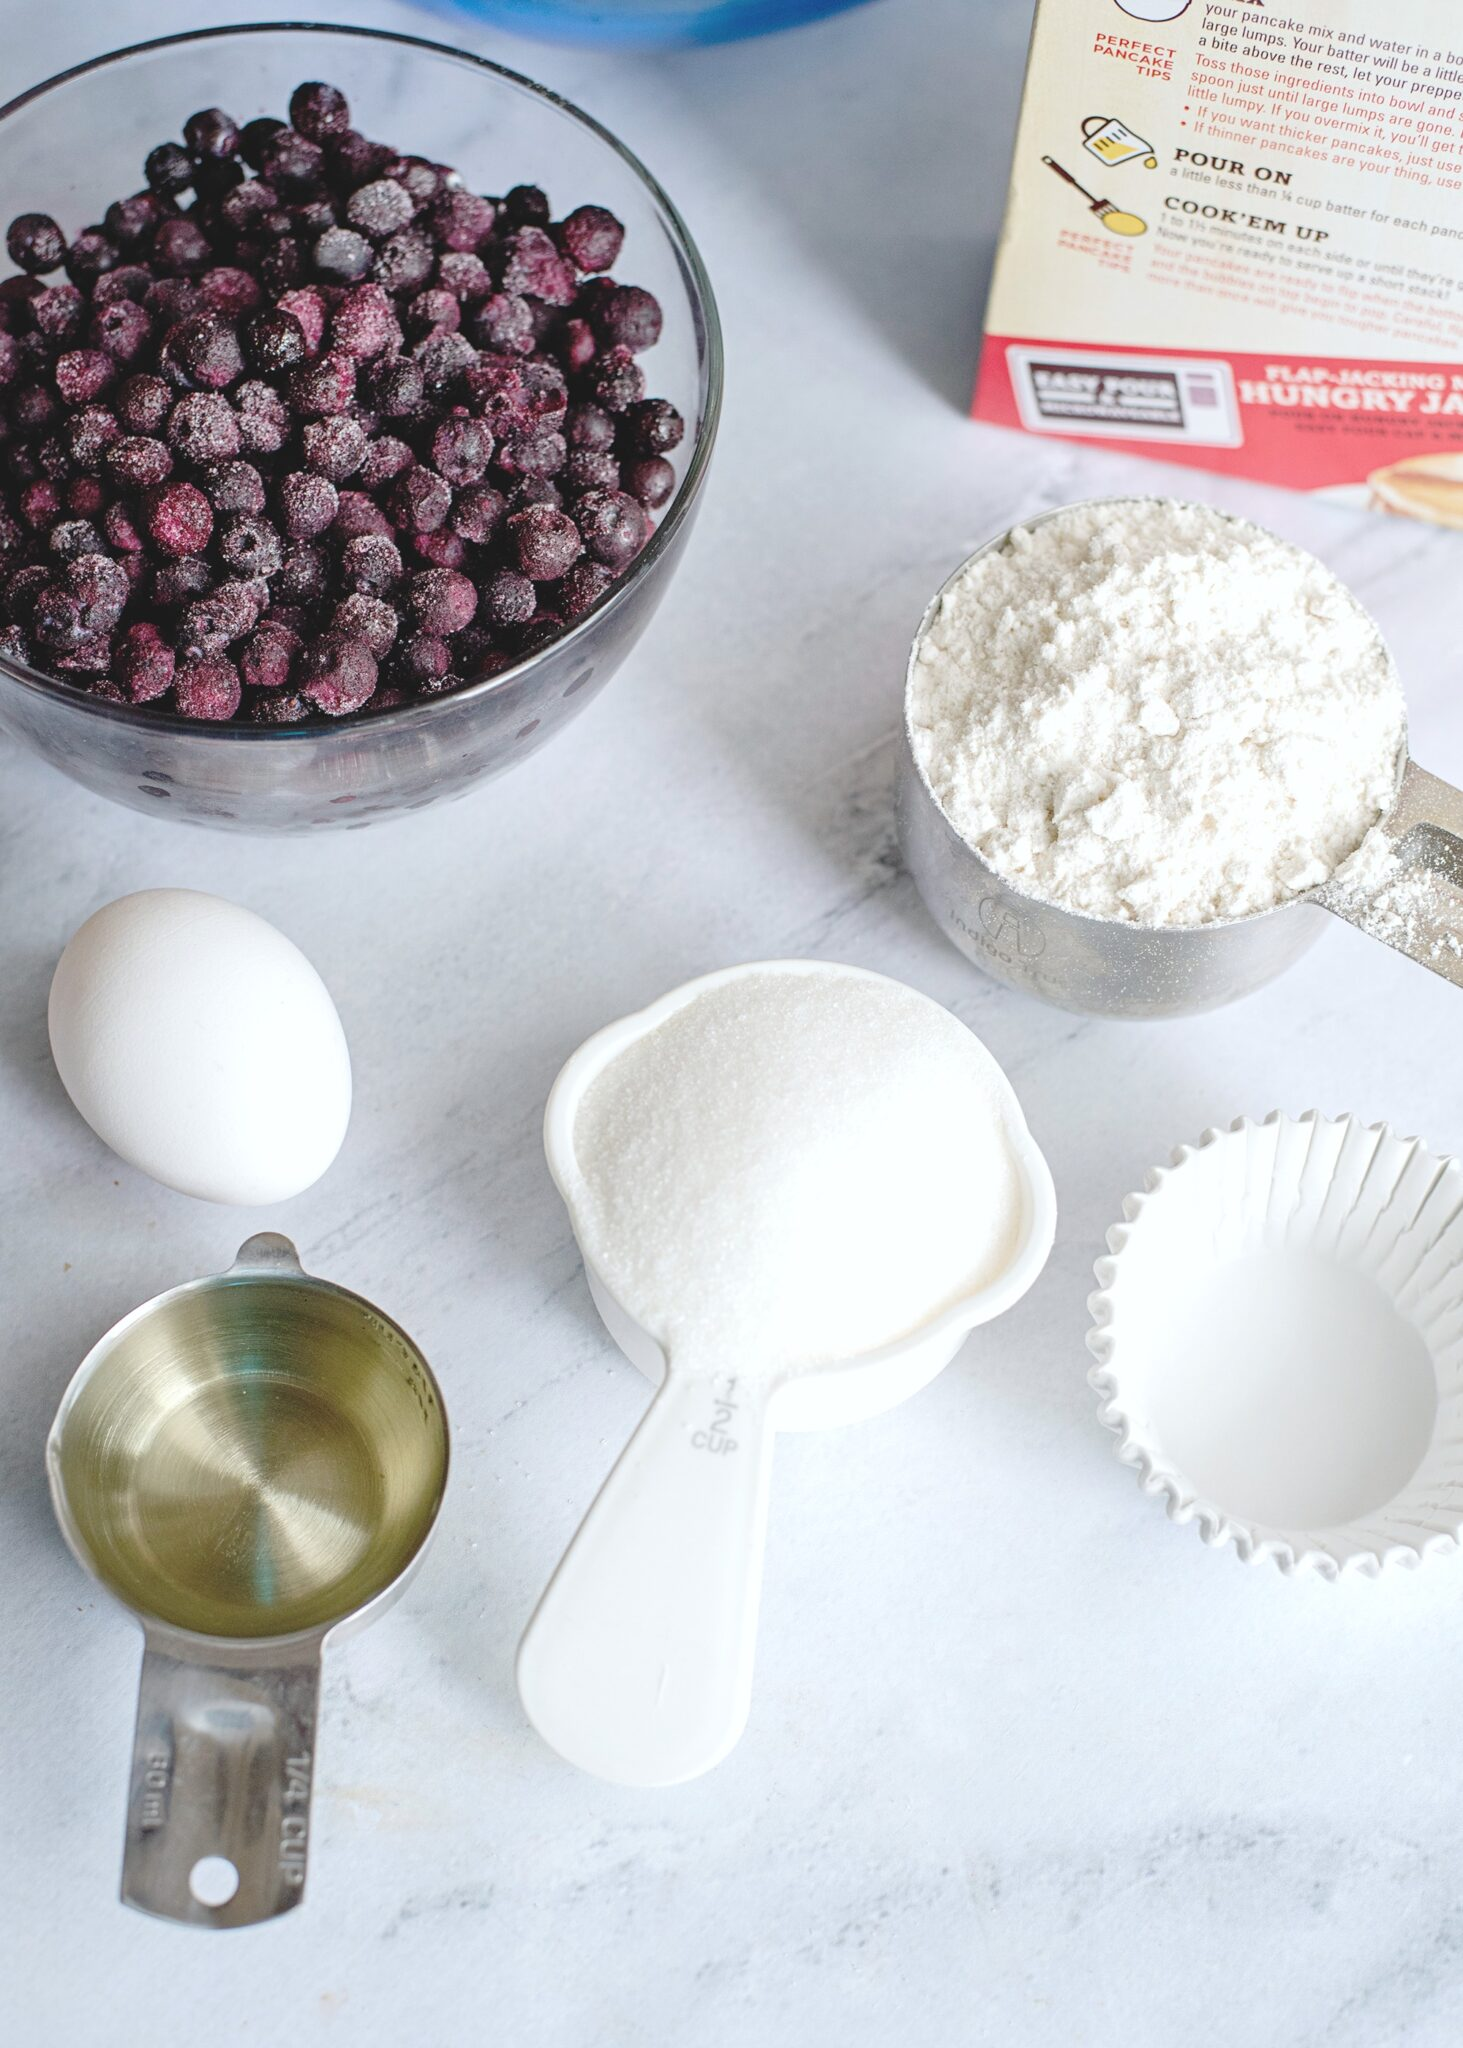 A close up of the ingredients needed for the Blueberry Pancake Muffins.